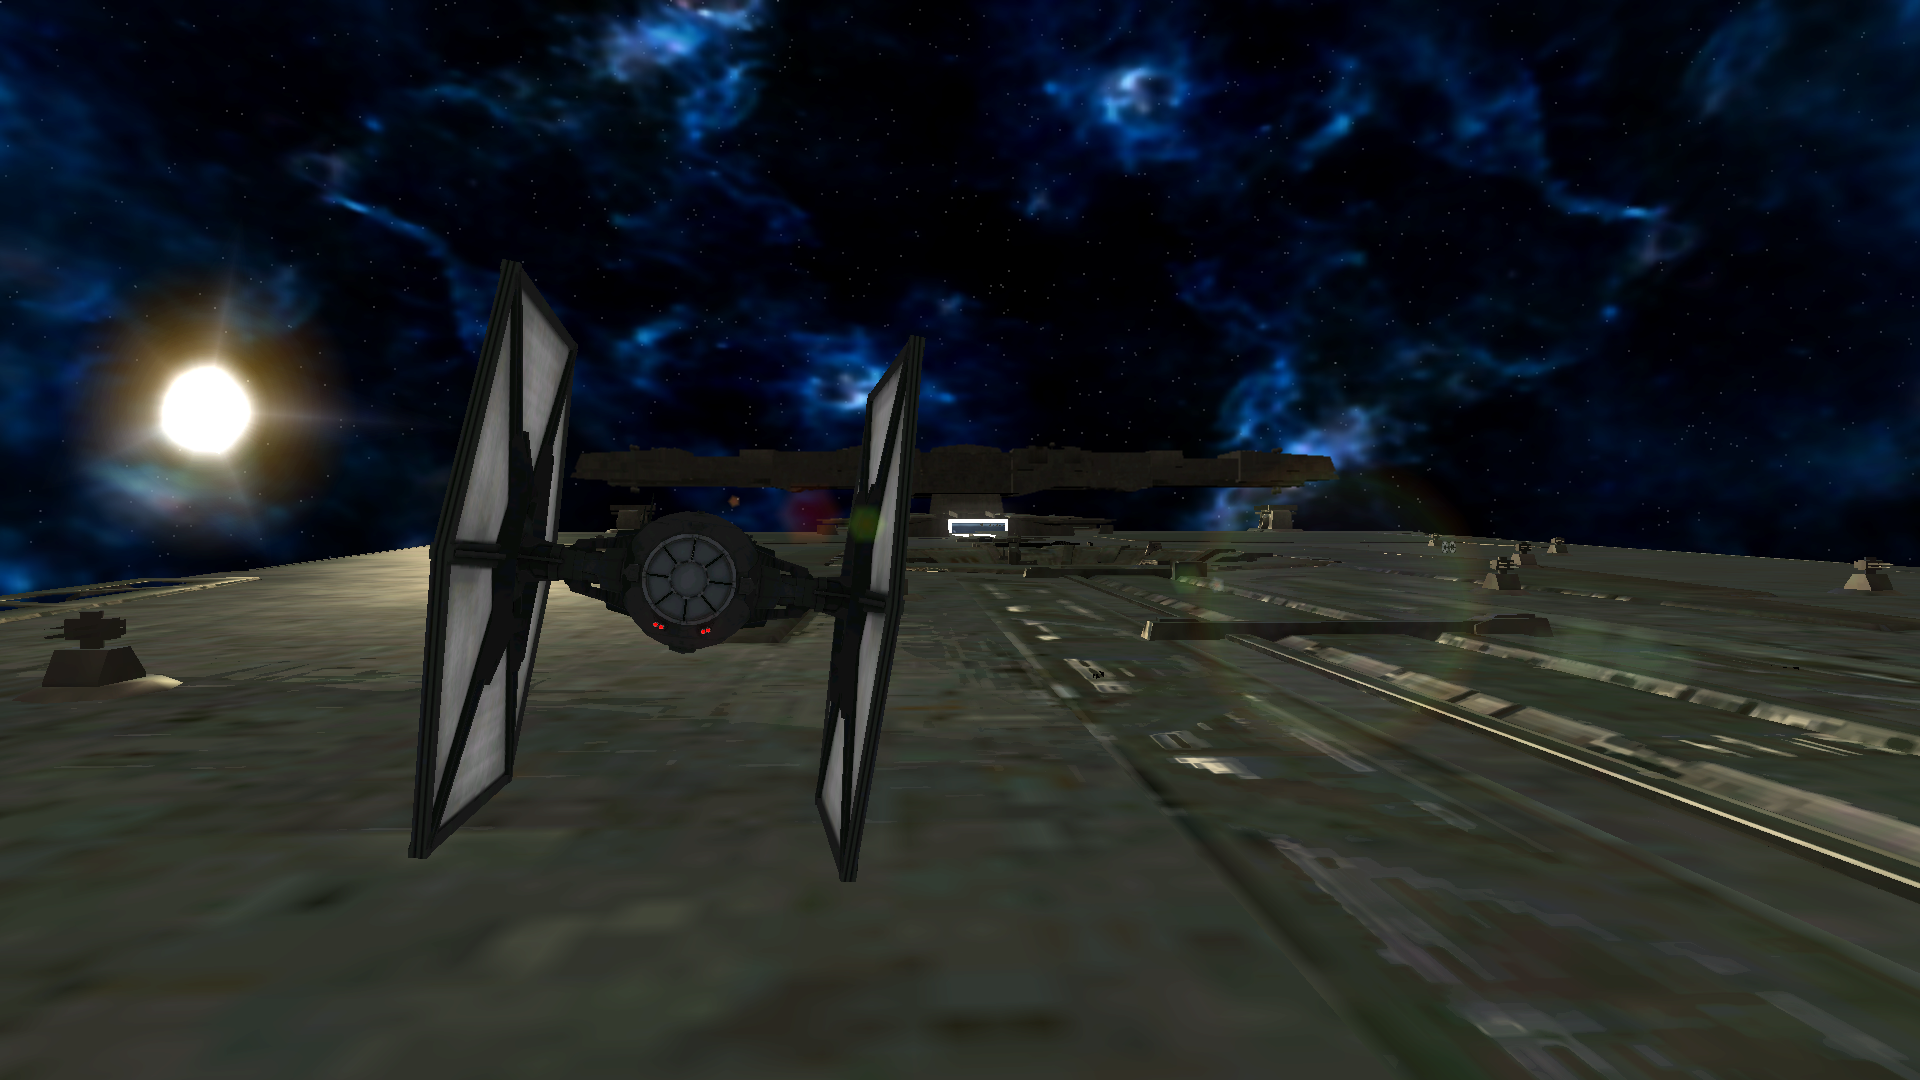 First Order Tie Fighter Image Star Wars A New Frontier Mod For Star Wars Battlefront Ii Mod Db